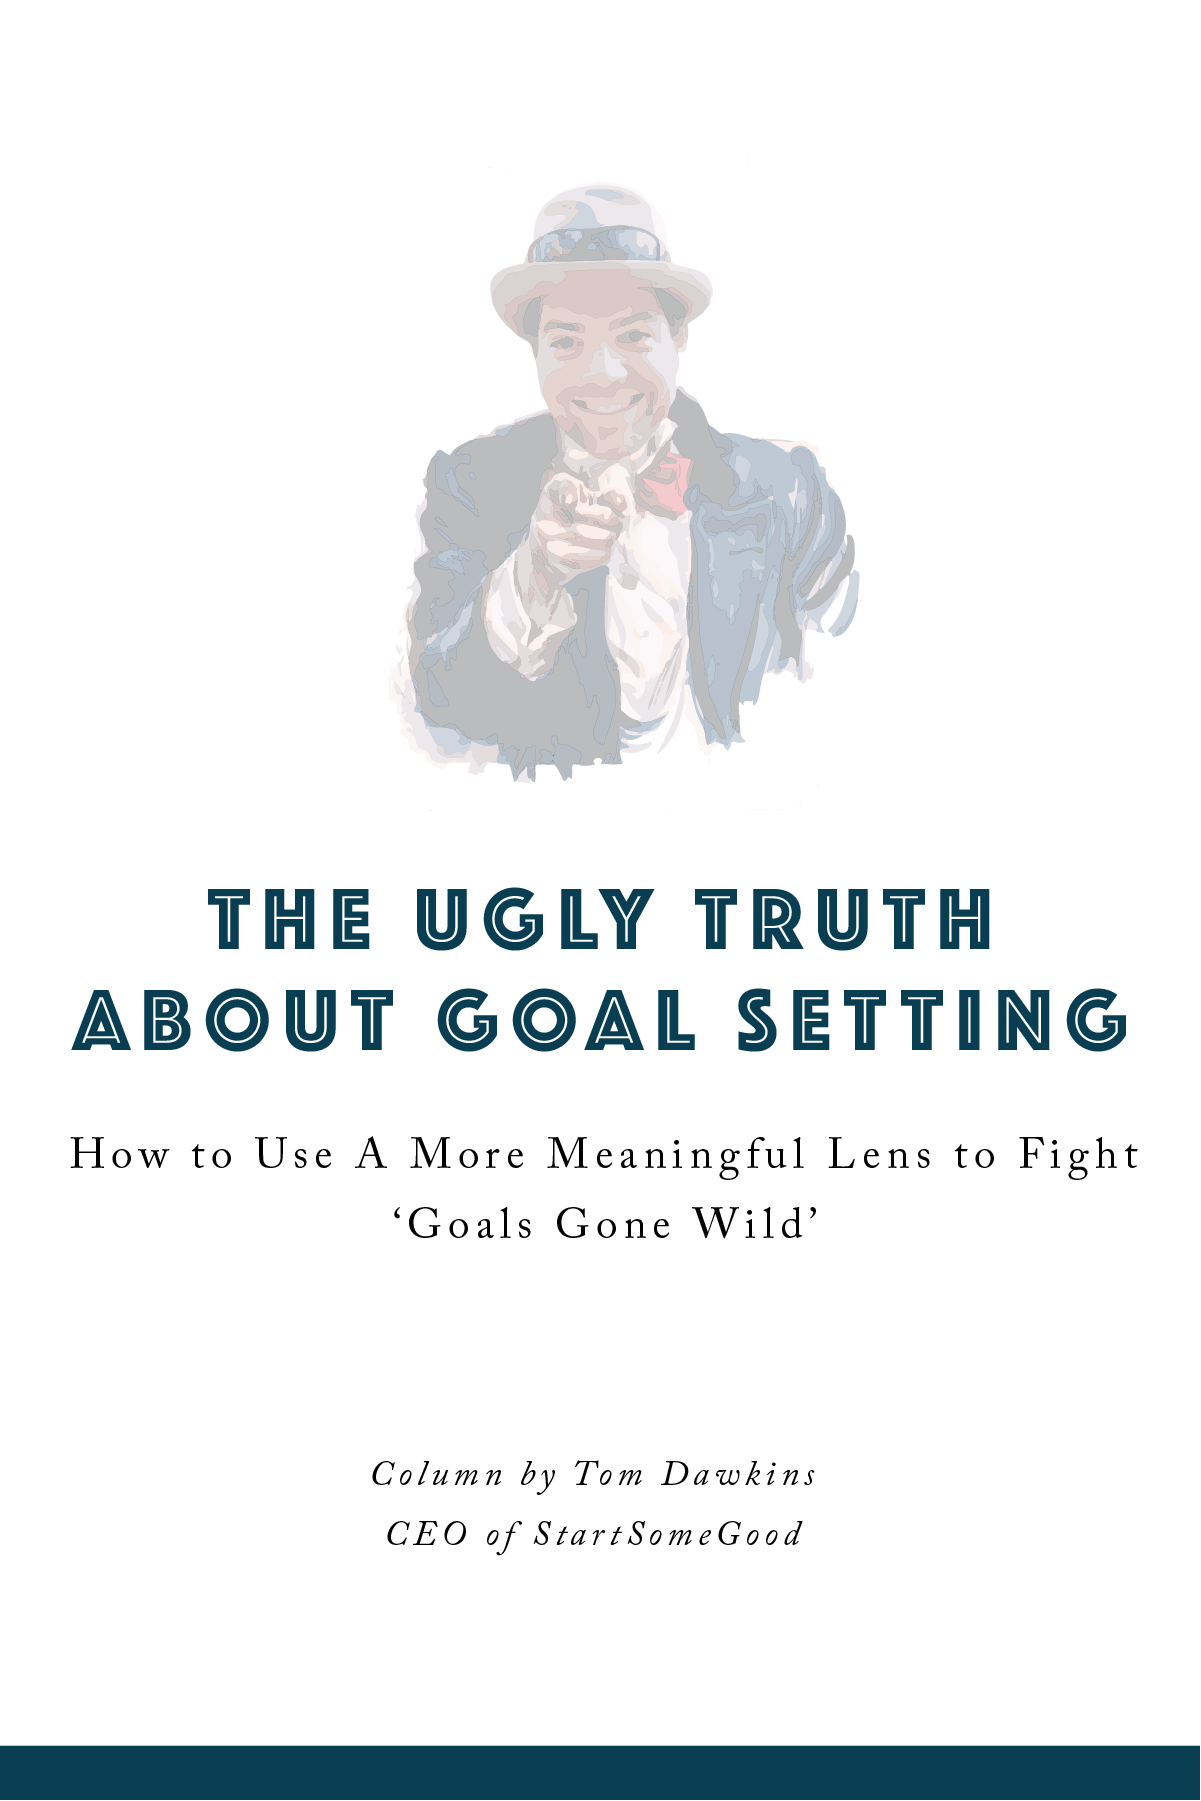 The Ugly Truth About Goal Setting How to Use a More Meaningful Lens to Fight 'Goals Gone Wild' Column by Tom Dawkins, CEO of StartSomeGood